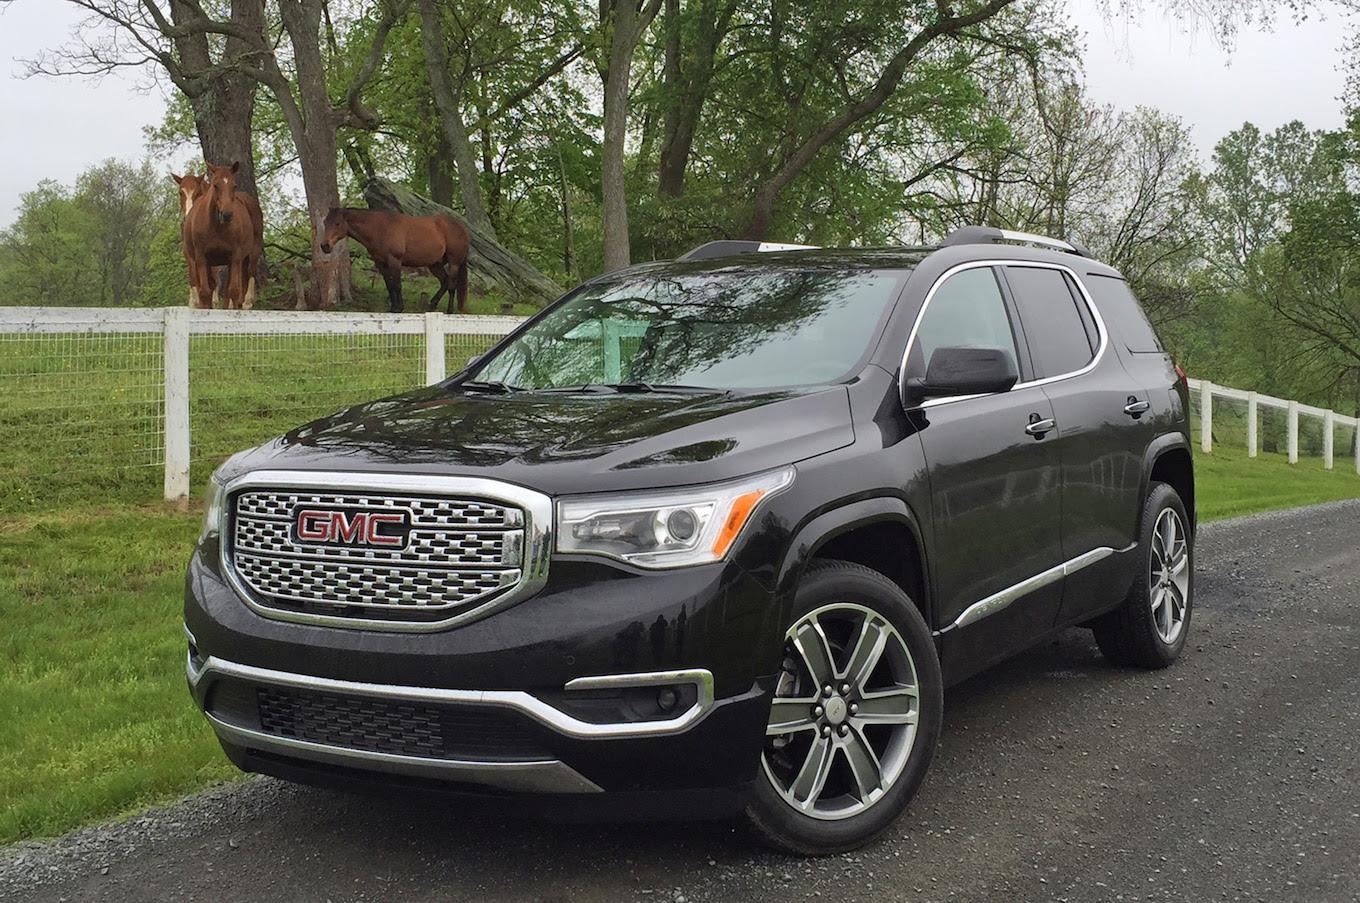 2017 GMC Acadia First Drive Review: Smaller on Purpose ...